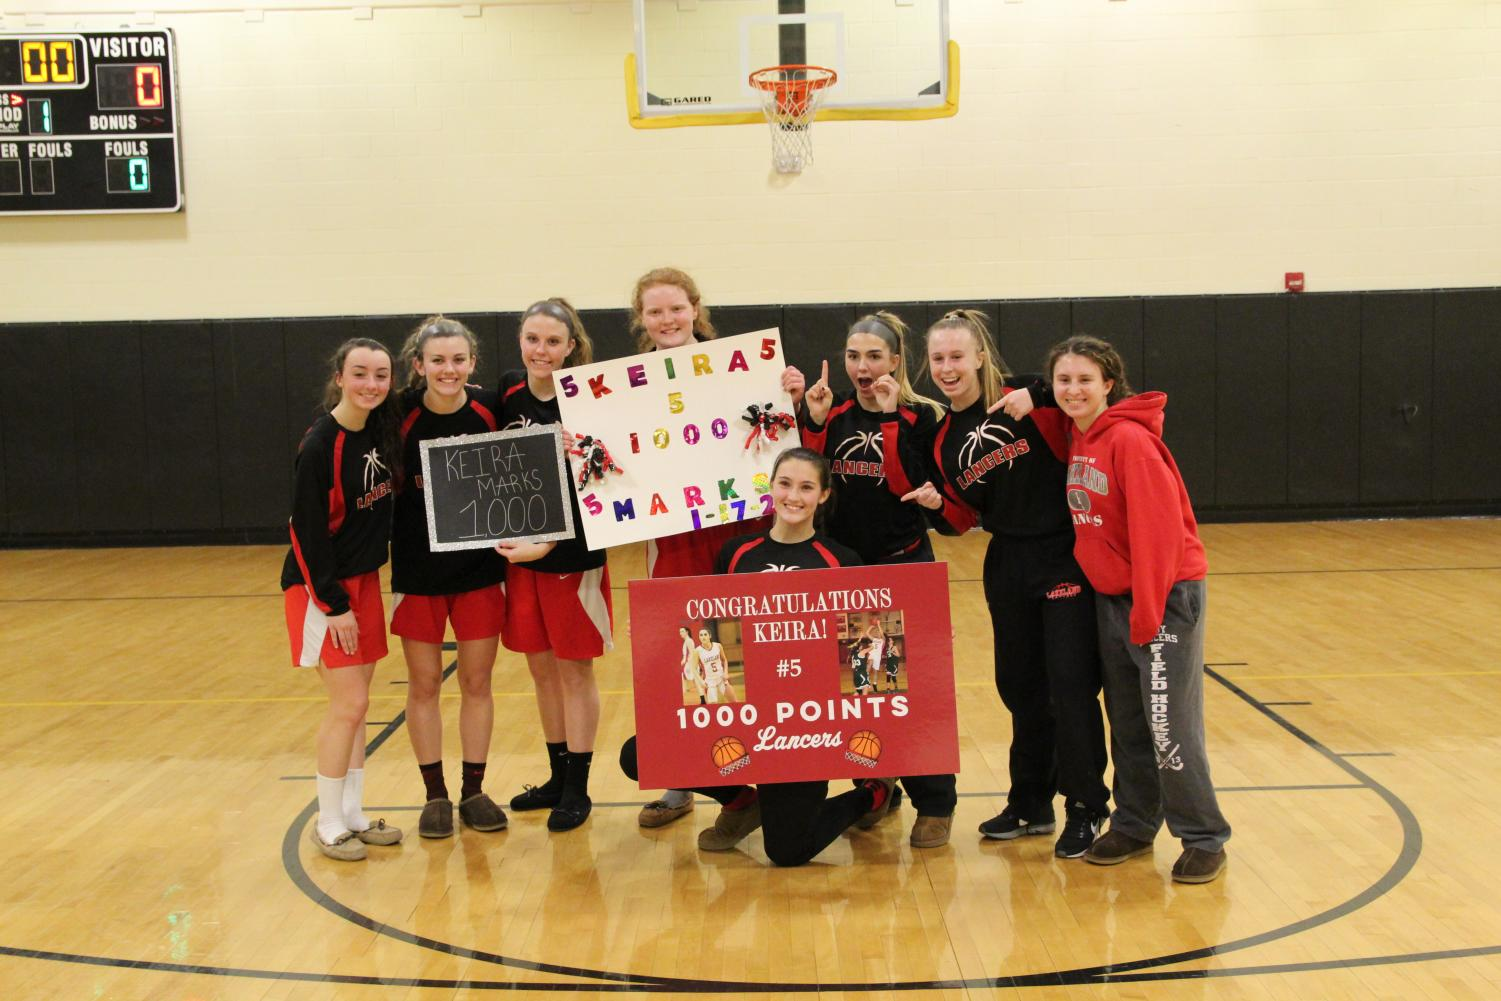 Marks celebrating her 1,000 point with her fellow teammates.